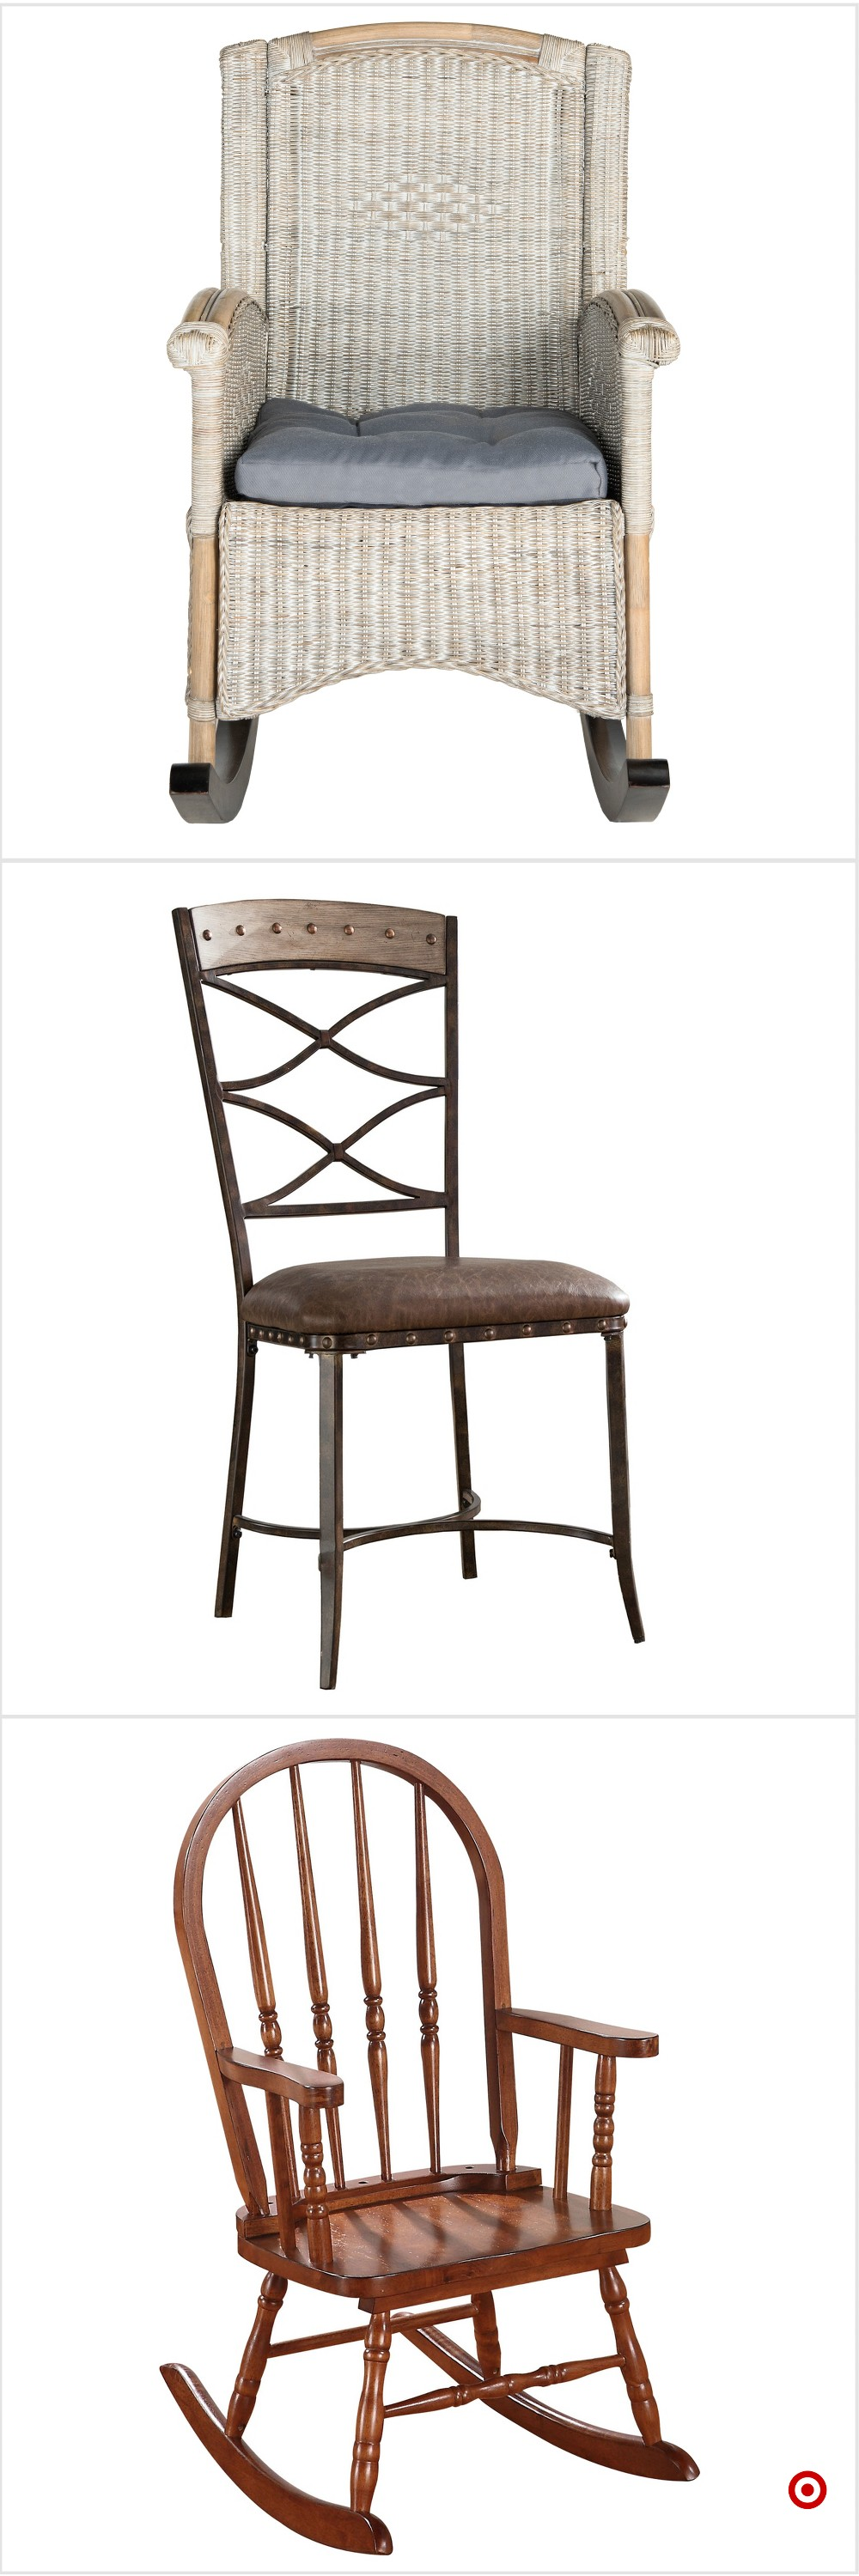 Shop Target for rocking chair you will love at great low